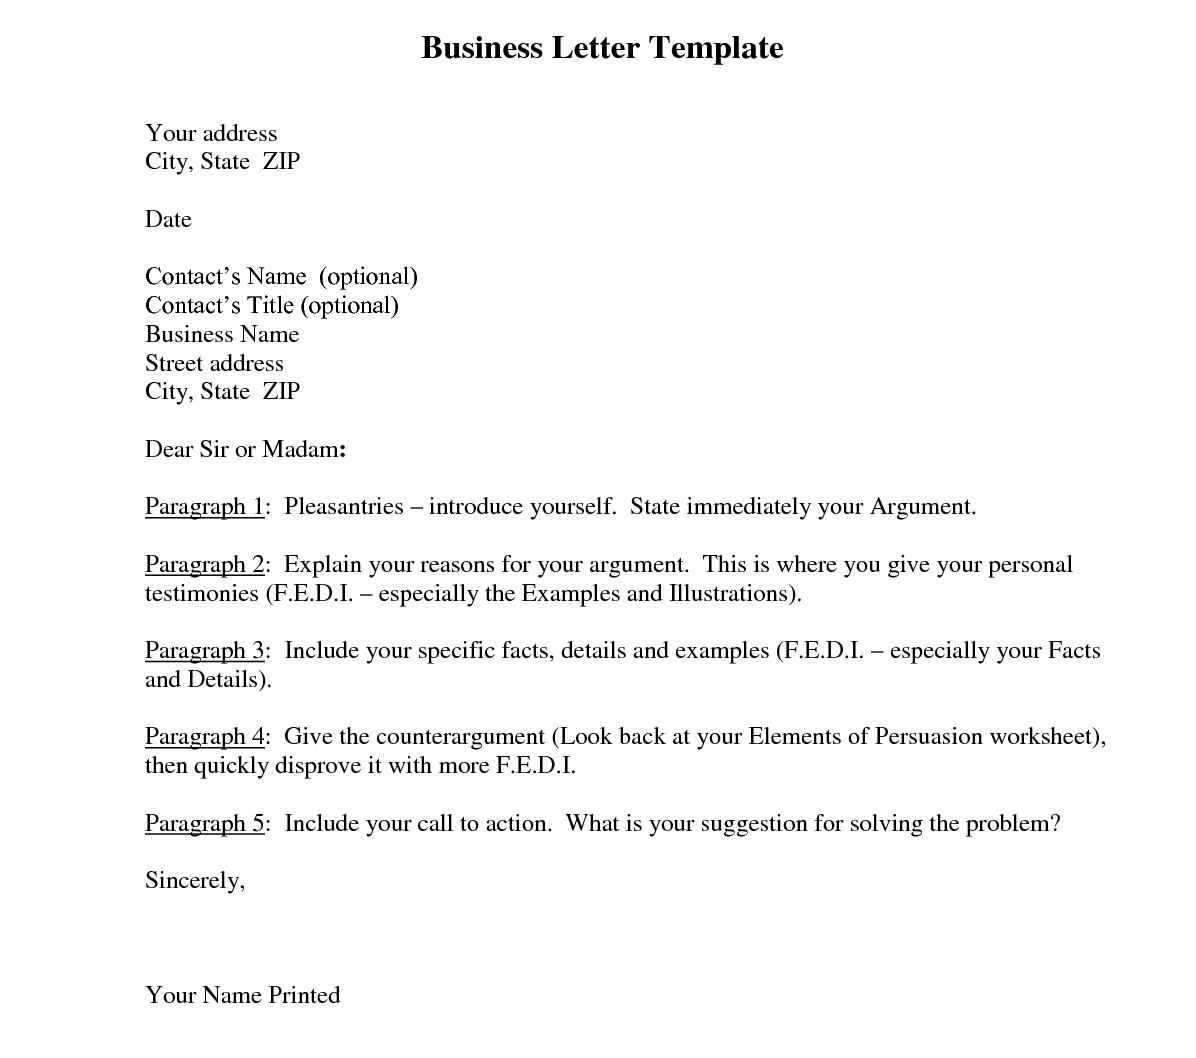 Business Letter Meeting Request Business Letter With